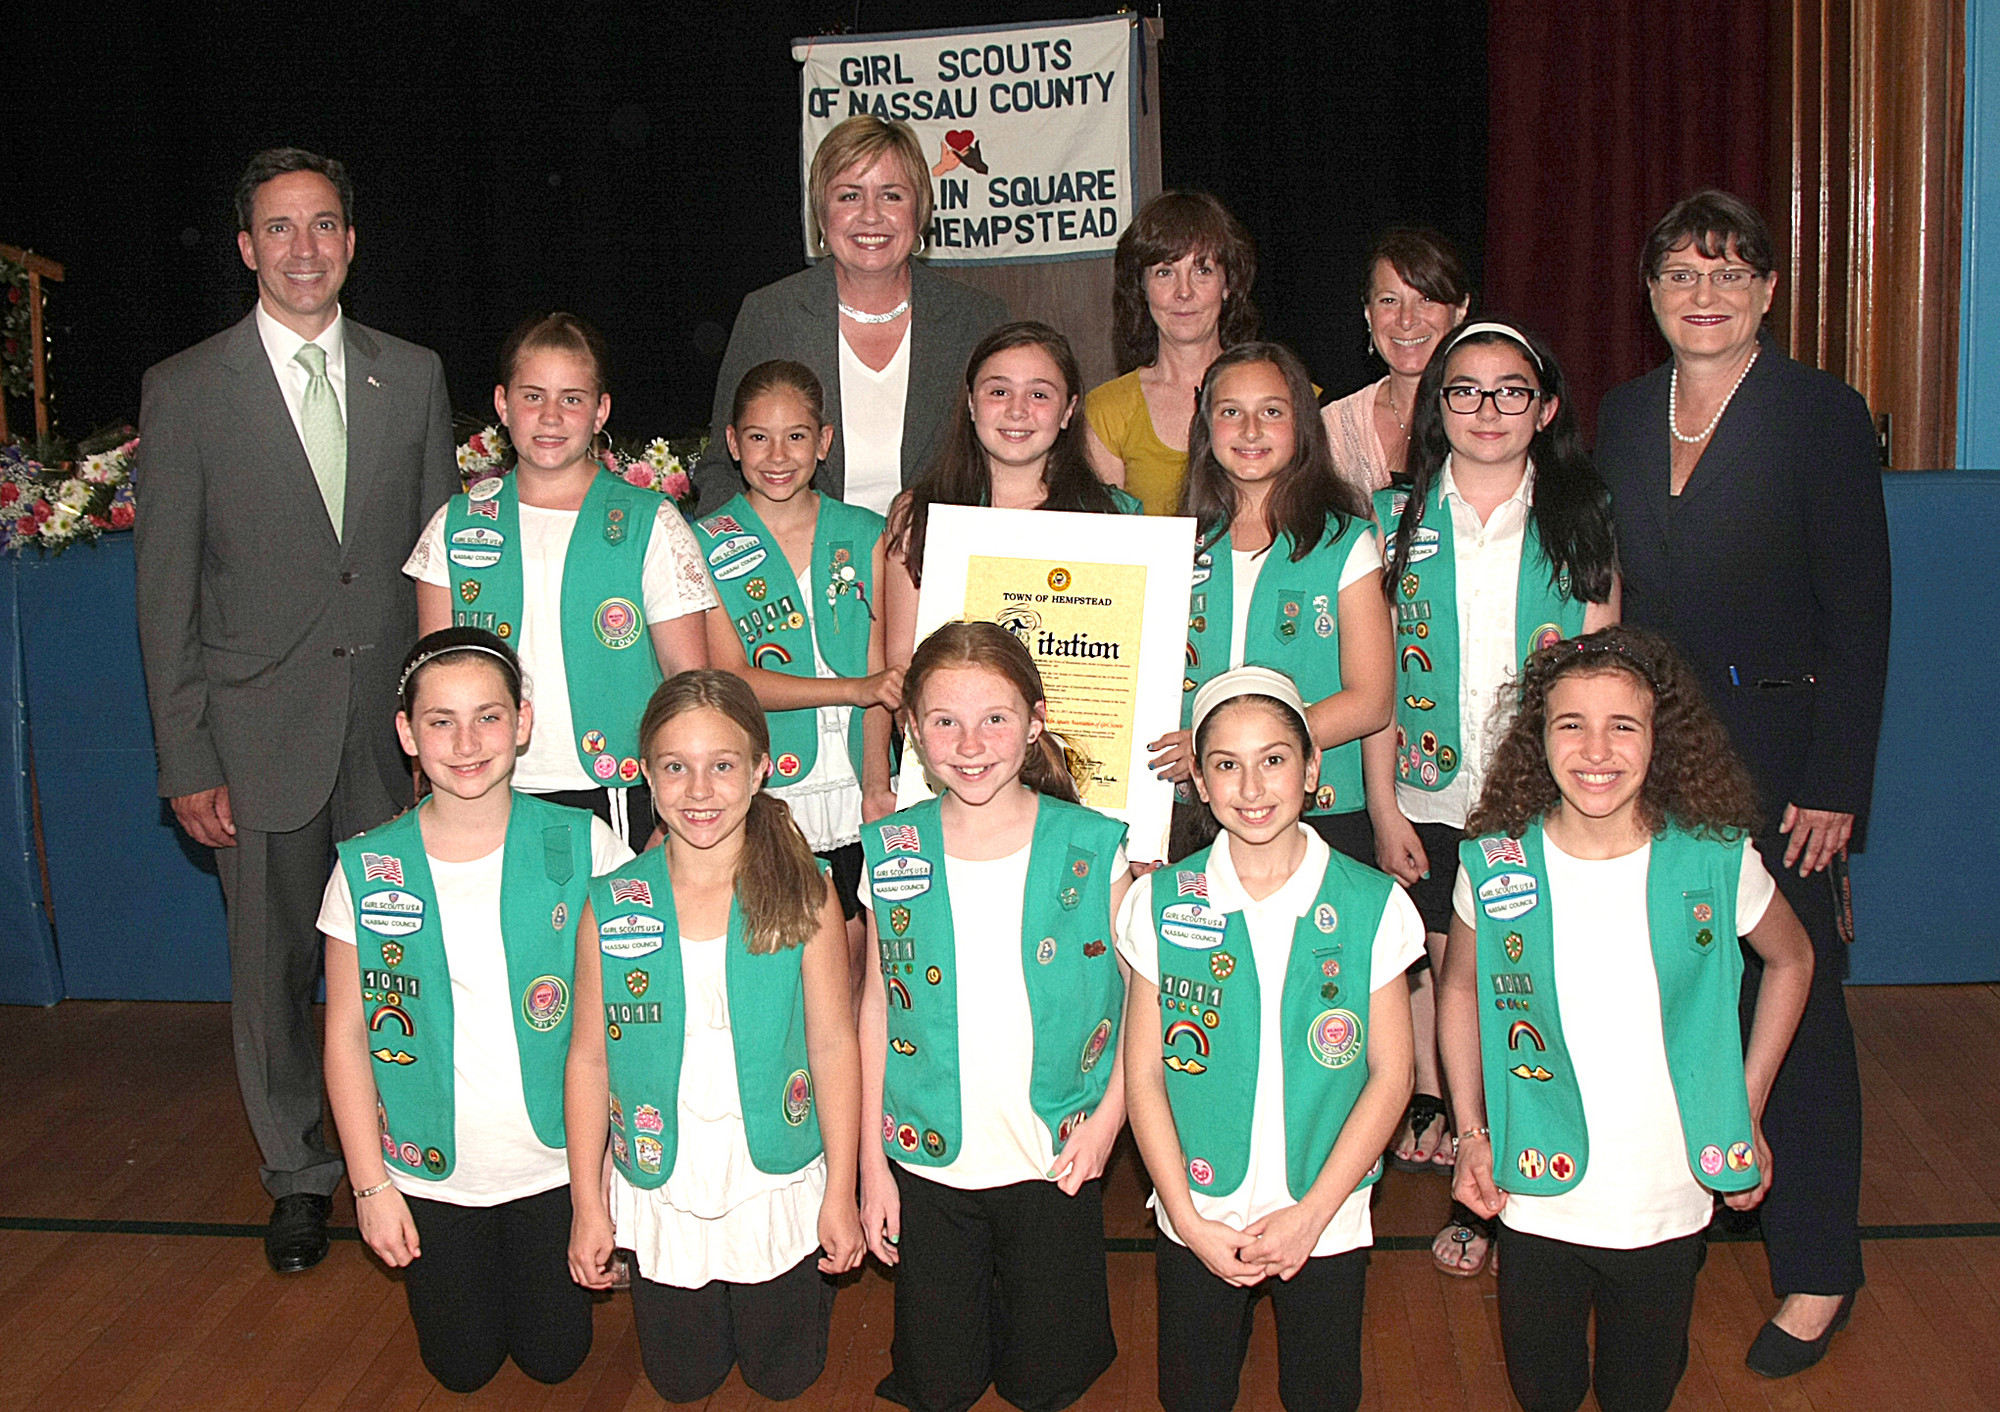 New York State Senator Jack Martins, Nassau County Clerk Maureen O'Connell, Town of Hempstead Supervisor Kate Murray congratulate Troop 1107 with the Bronze Award alongside Leader Lauren Bauman.